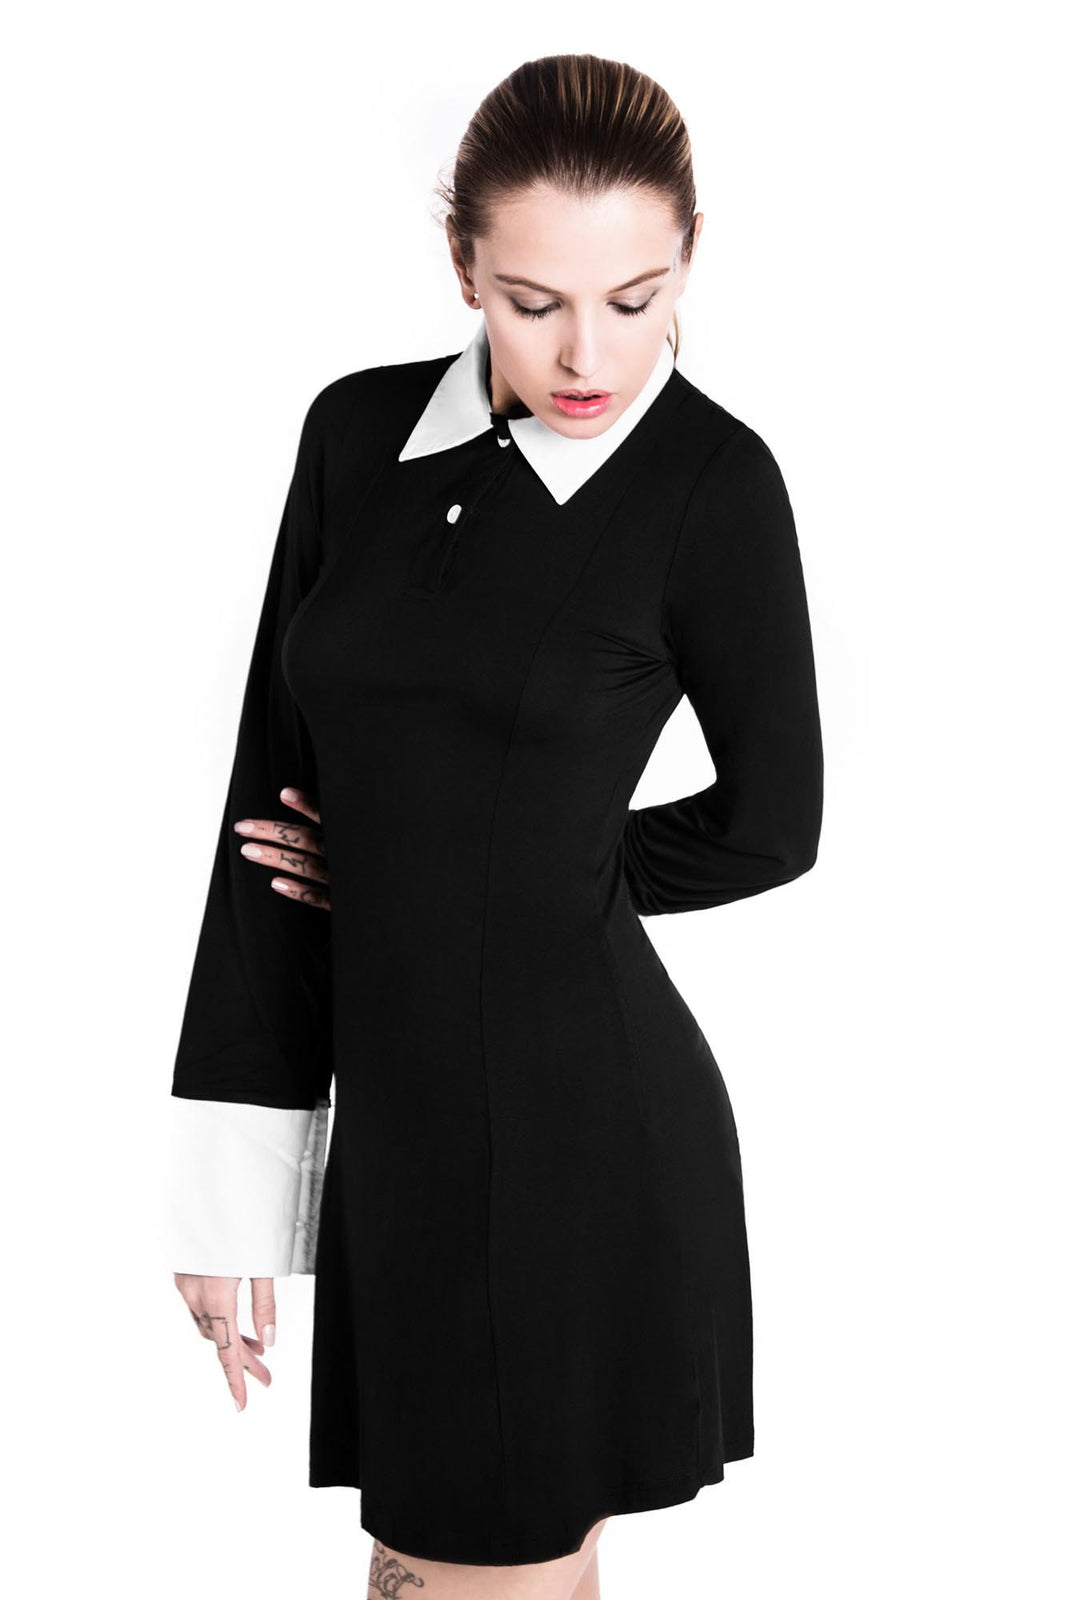 model wearing Wednesday Addams dress from Killstar